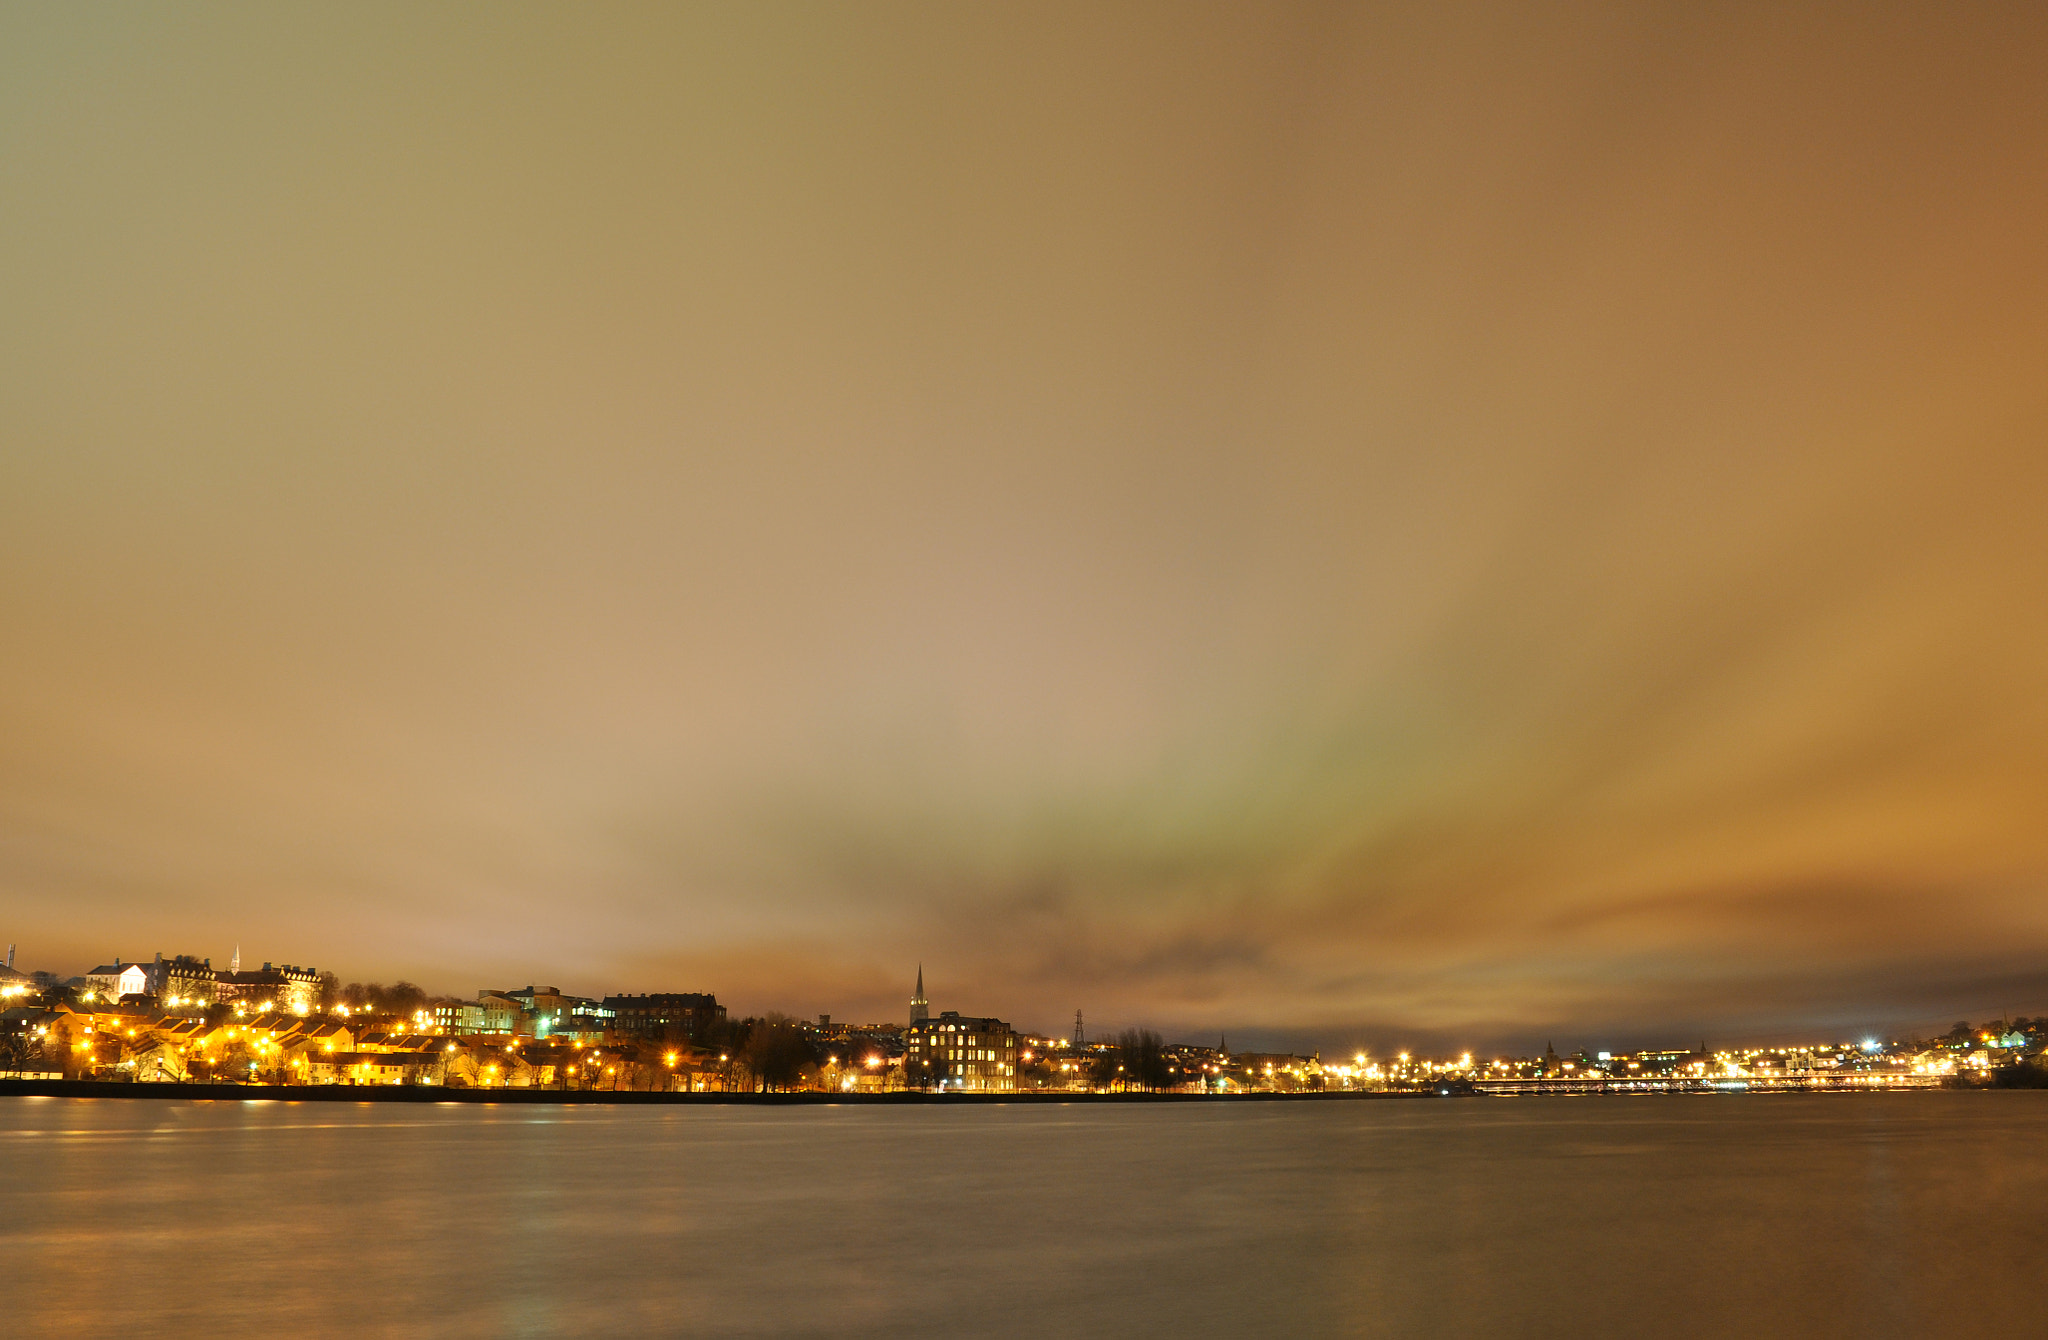 Photograph Derry City At Night by Eddie Maxwell on 500px